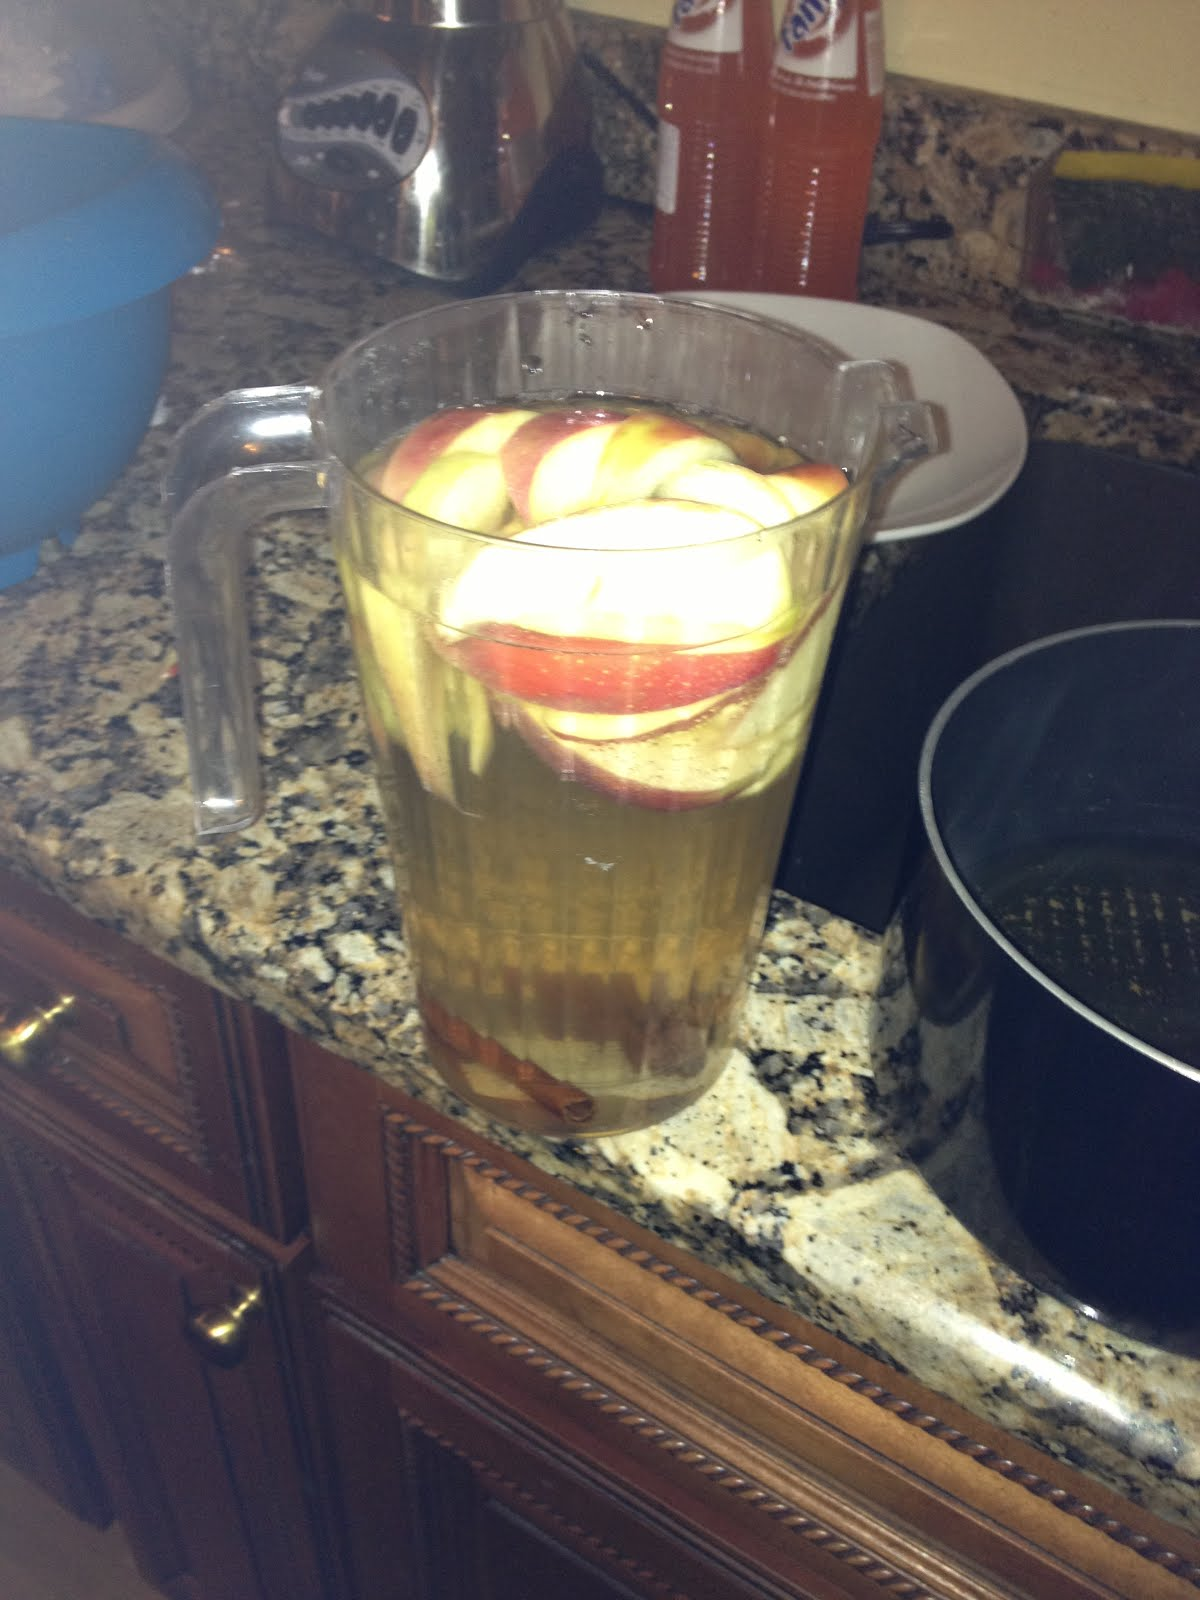 Apple cinnamon water is one of several infused waters that has been populating the Internet recently, and part of the pitch accompanying the photos and recipes is that this flavored water has no.